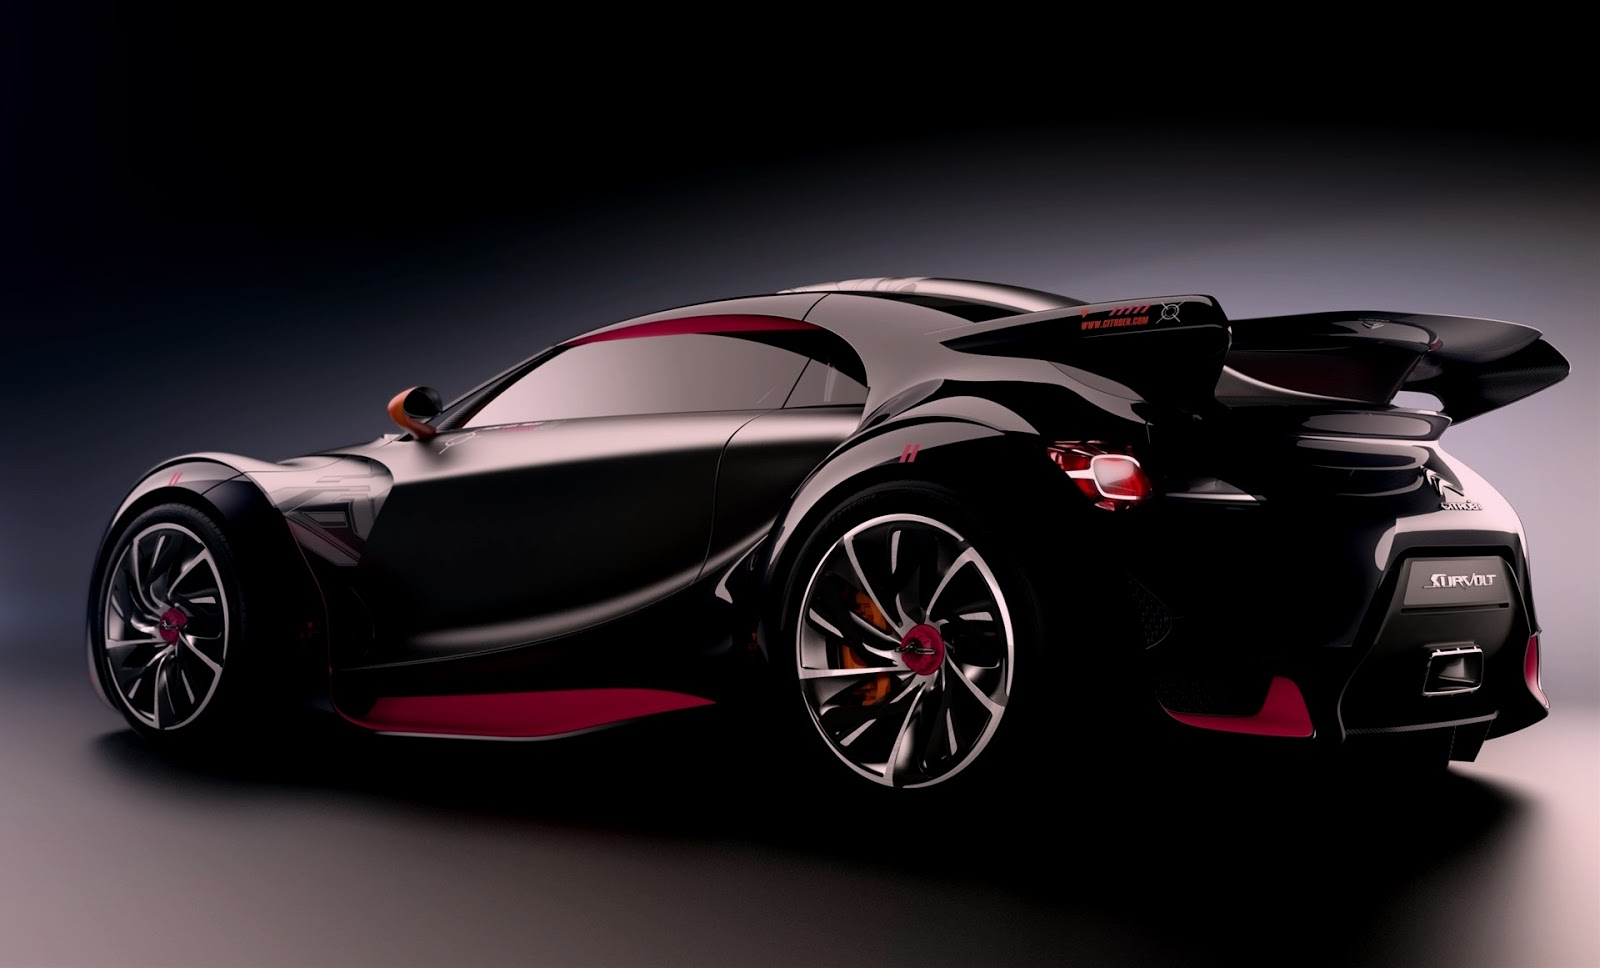 Hd Wallpaper Stock Amazing Concept Cars Wallpapers